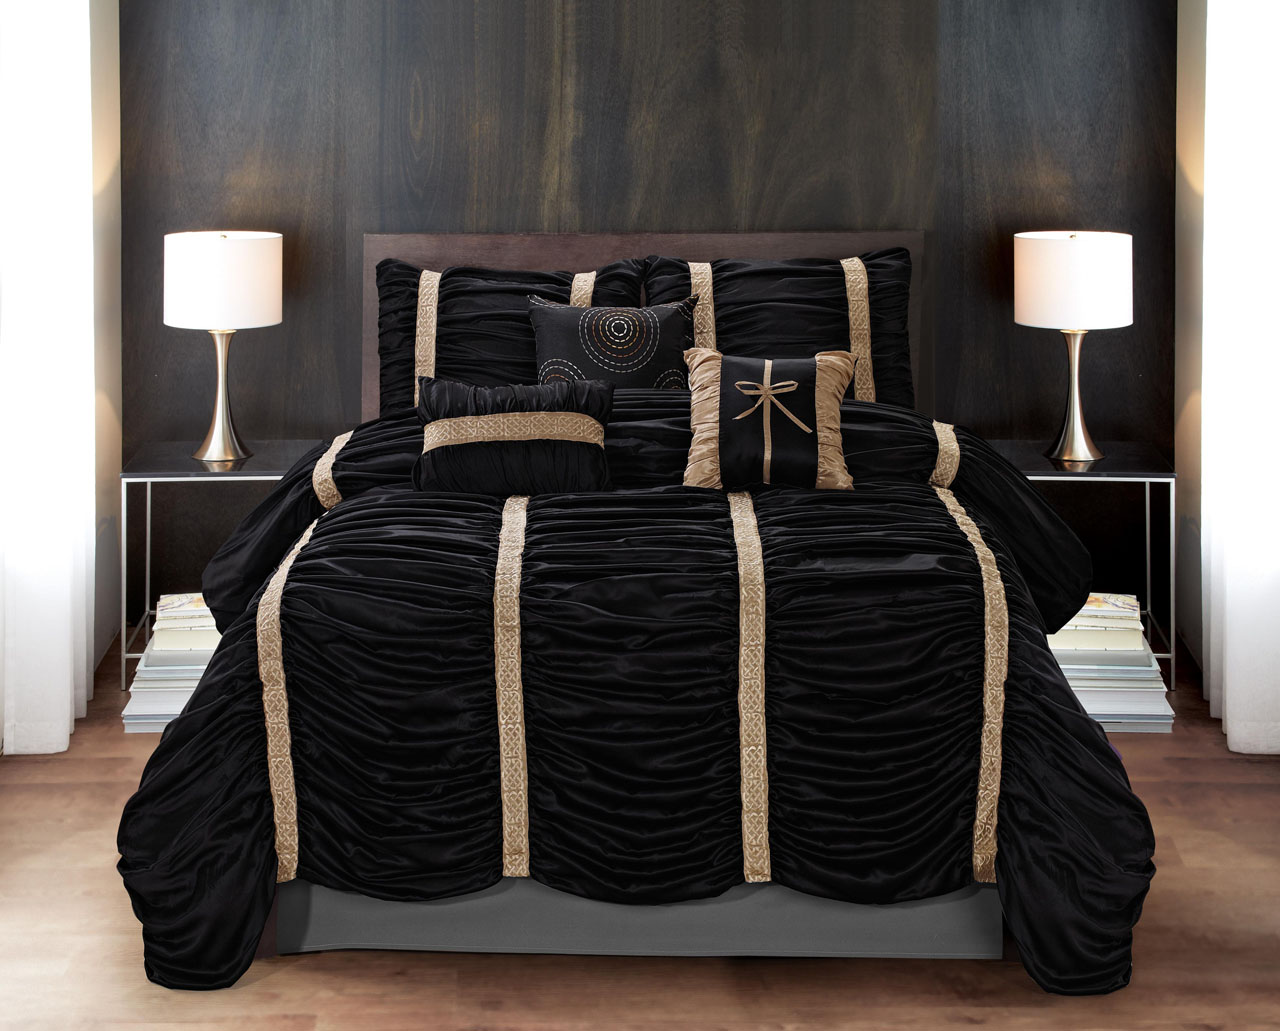 black and gold comforter sets king 7 Piece Baraniece Black/Gold Comforter Set   Walmart.com black and gold comforter sets king